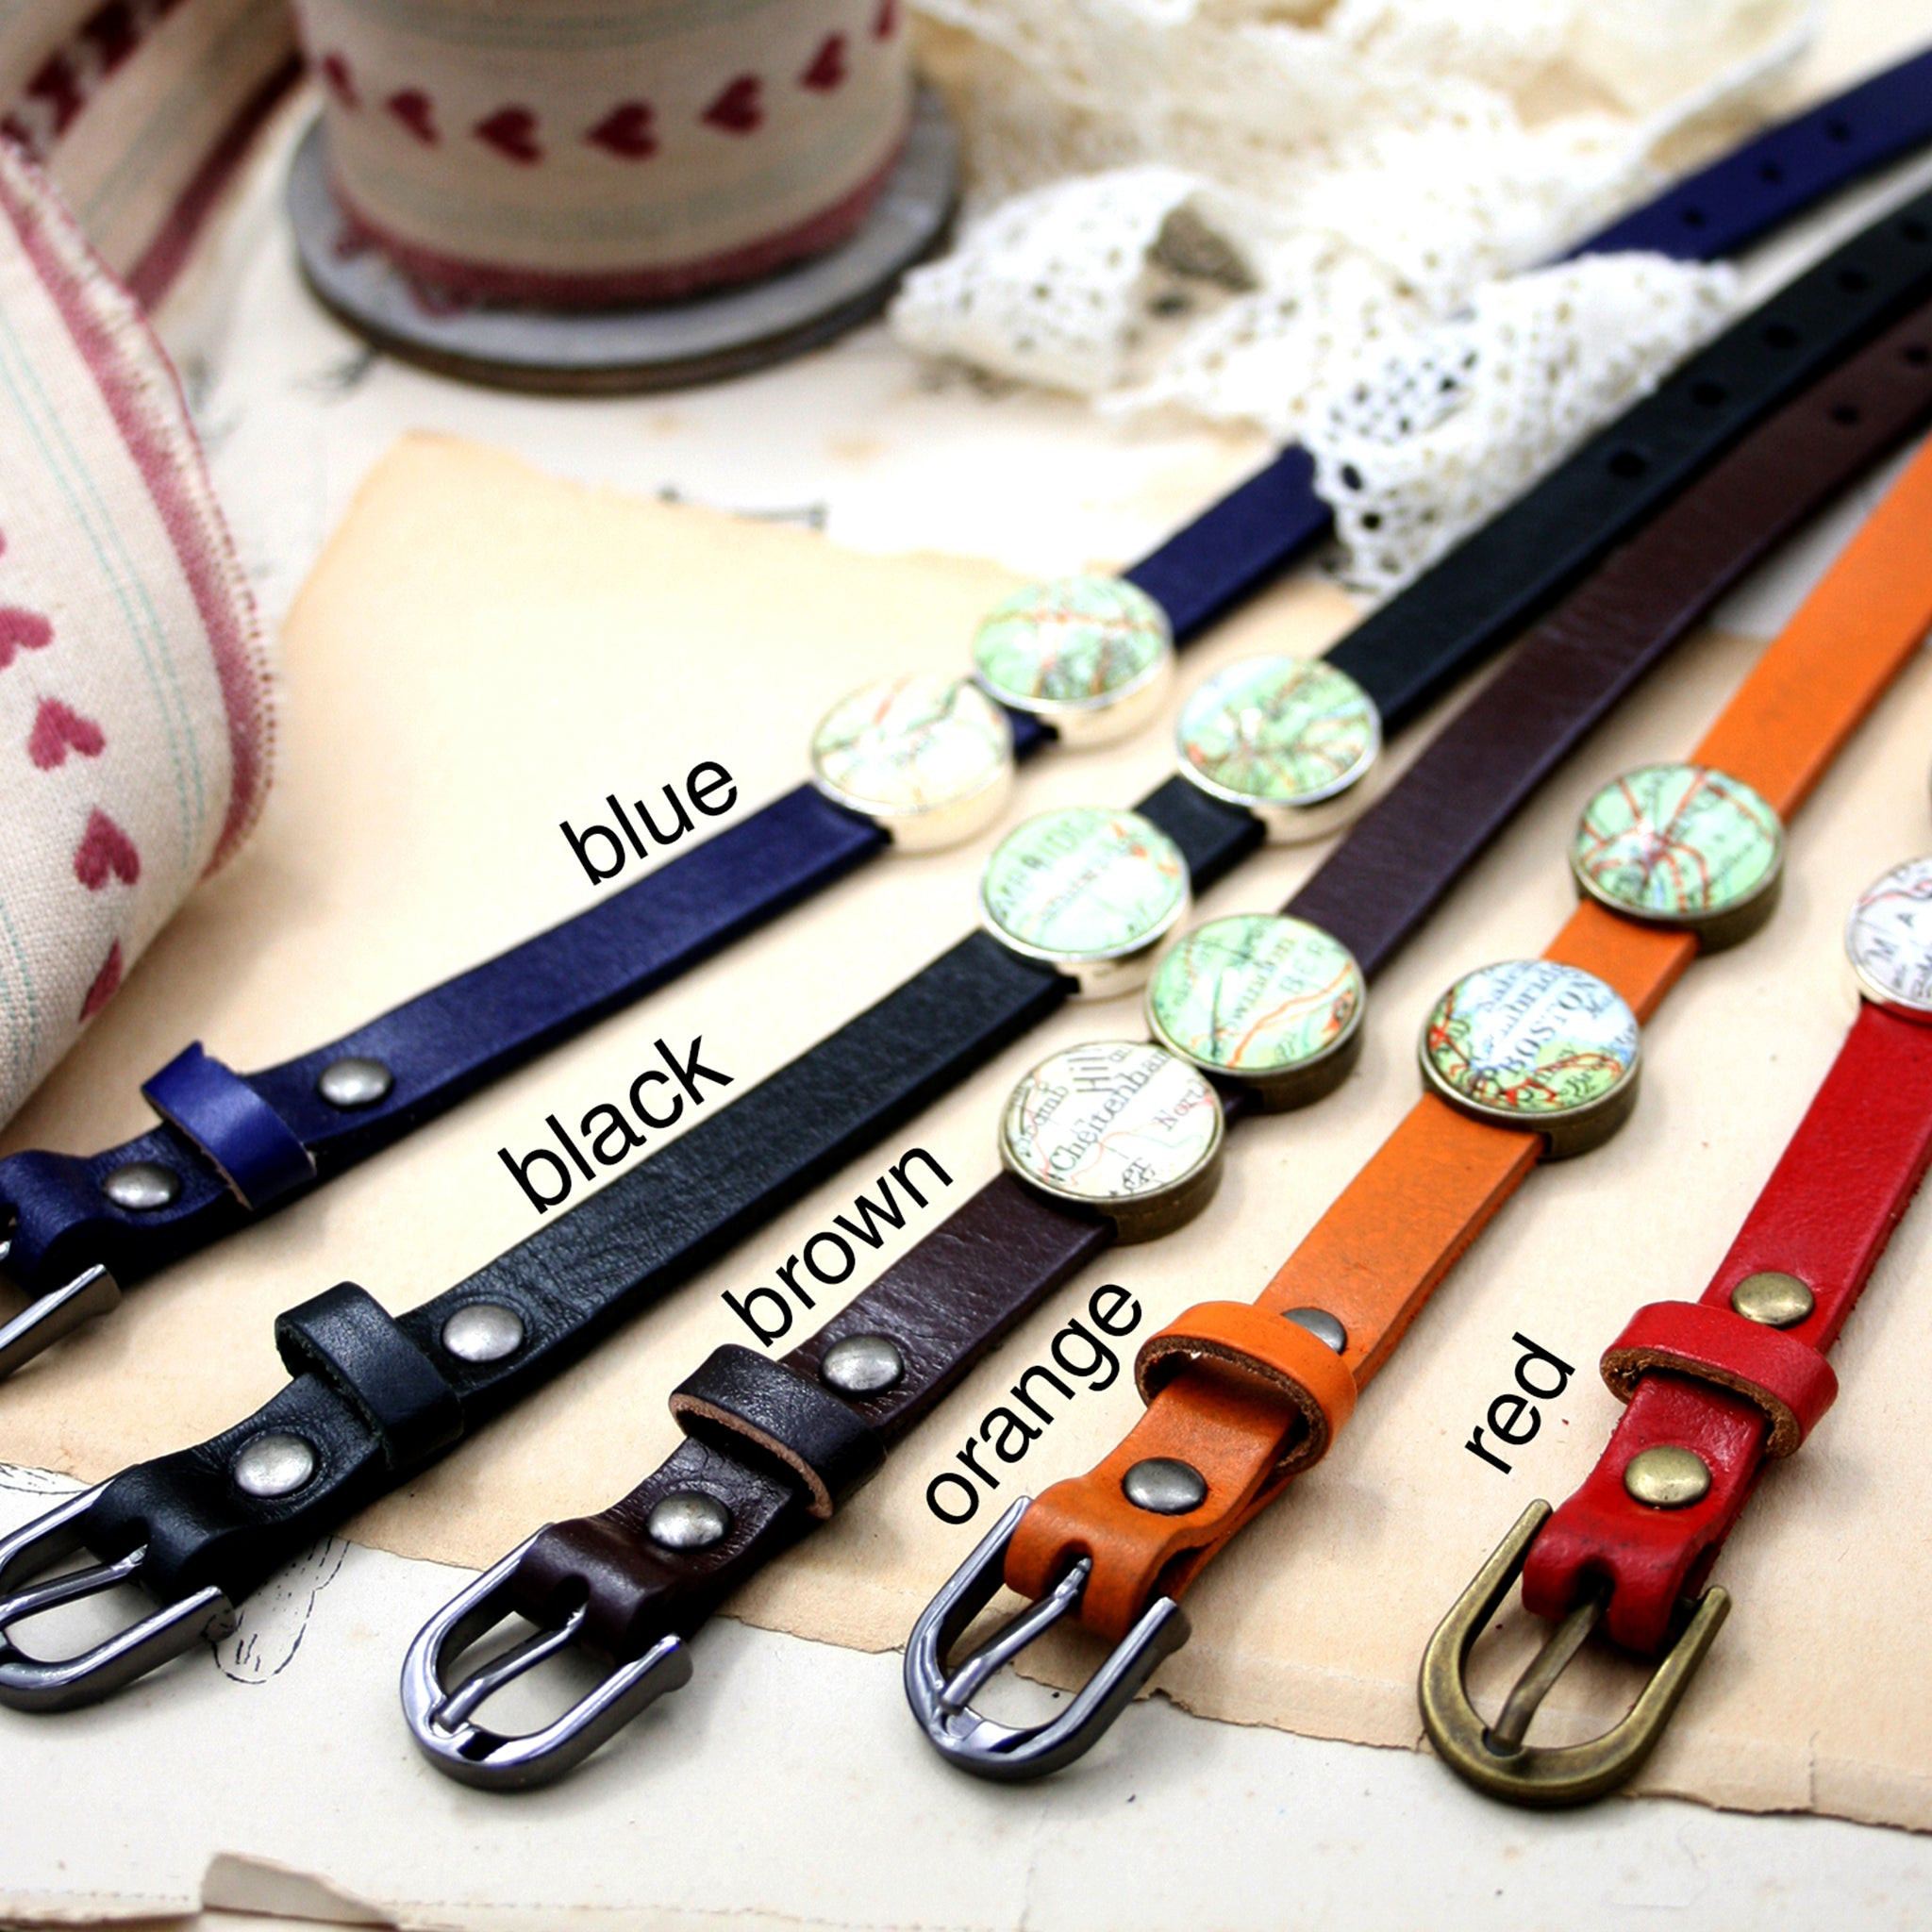 Blue, black, brown, red and orange leather bracelets featuring map locations